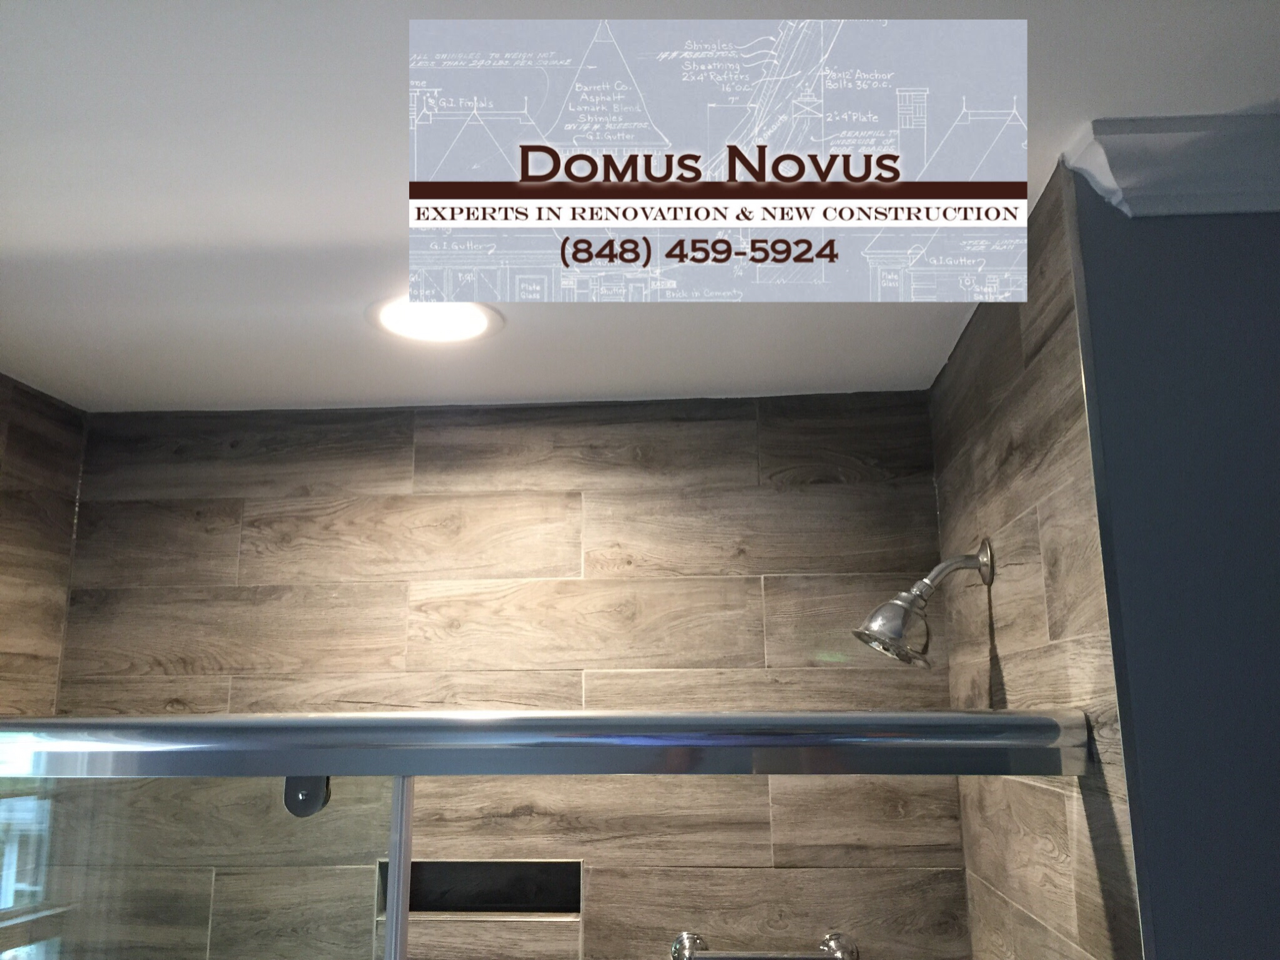 Bathroom, Sink, Toilet, Mirror, Winodw, Door, Floor, Shower, Shower Light, After Remodeling A Bathroom. Work done by General Contractors of Domus Novus LLC. Mydomusnovus projects. Experts in renovations and new constructions.